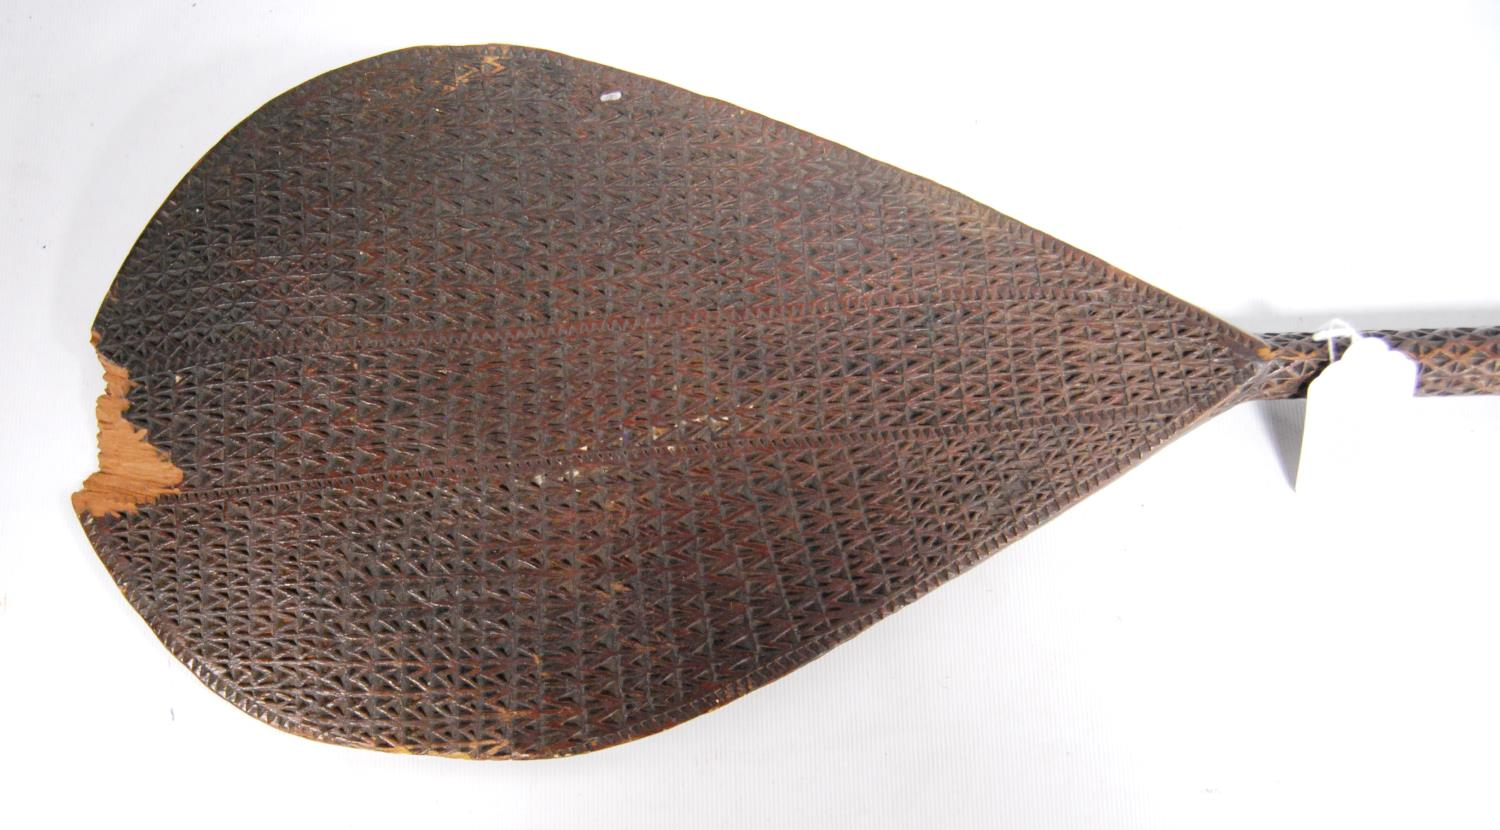 South Sea Island paddle with all over geometric carving and floral handle, 97cm long. - Image 2 of 5